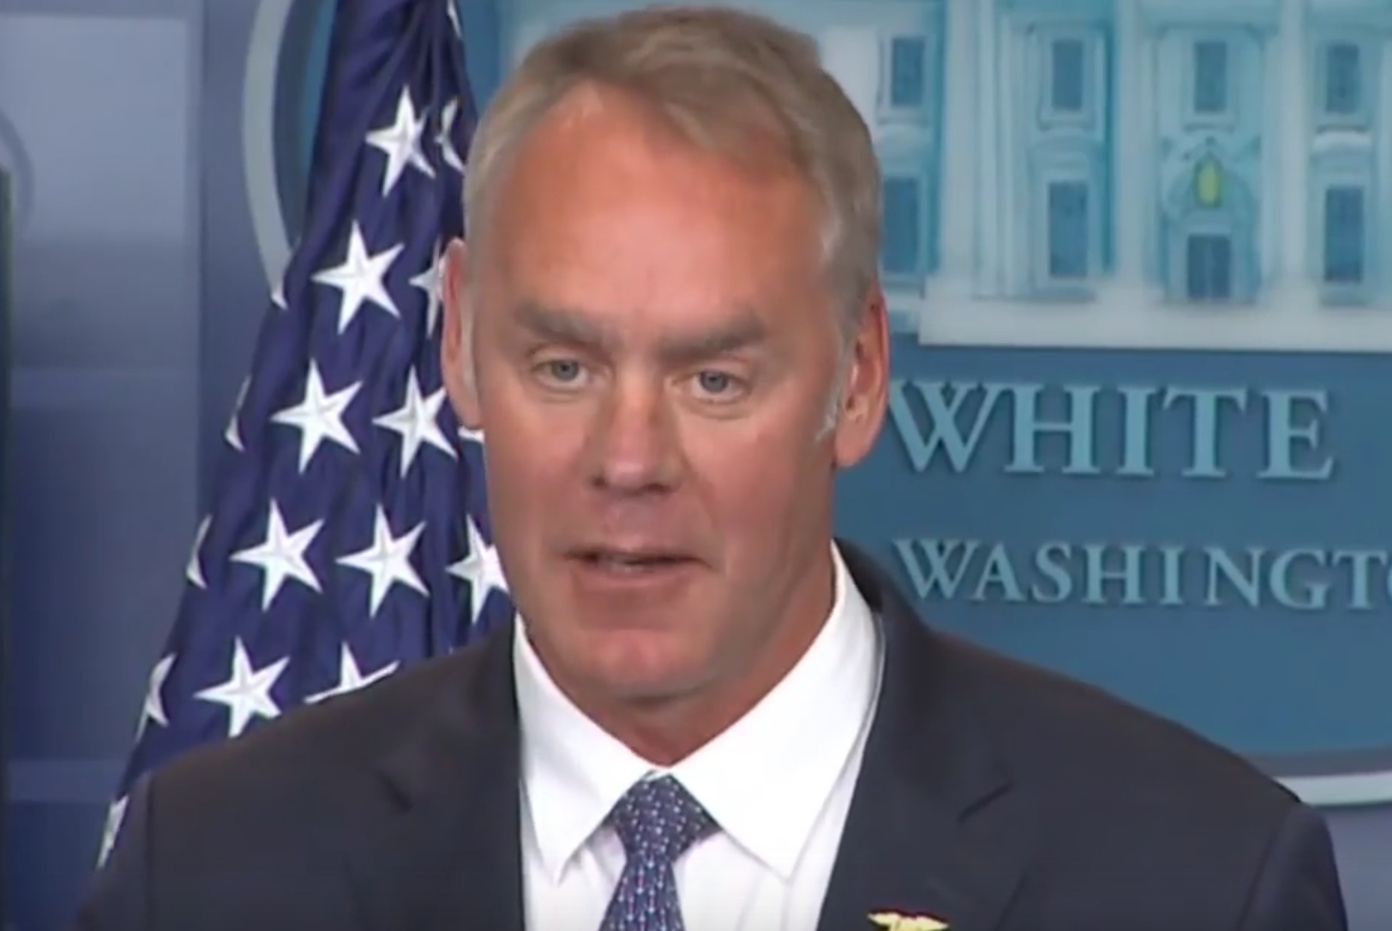 Interior Secretary Ryan Zinke Helps Vietnam War Veterans Wash Their Memorial Wall